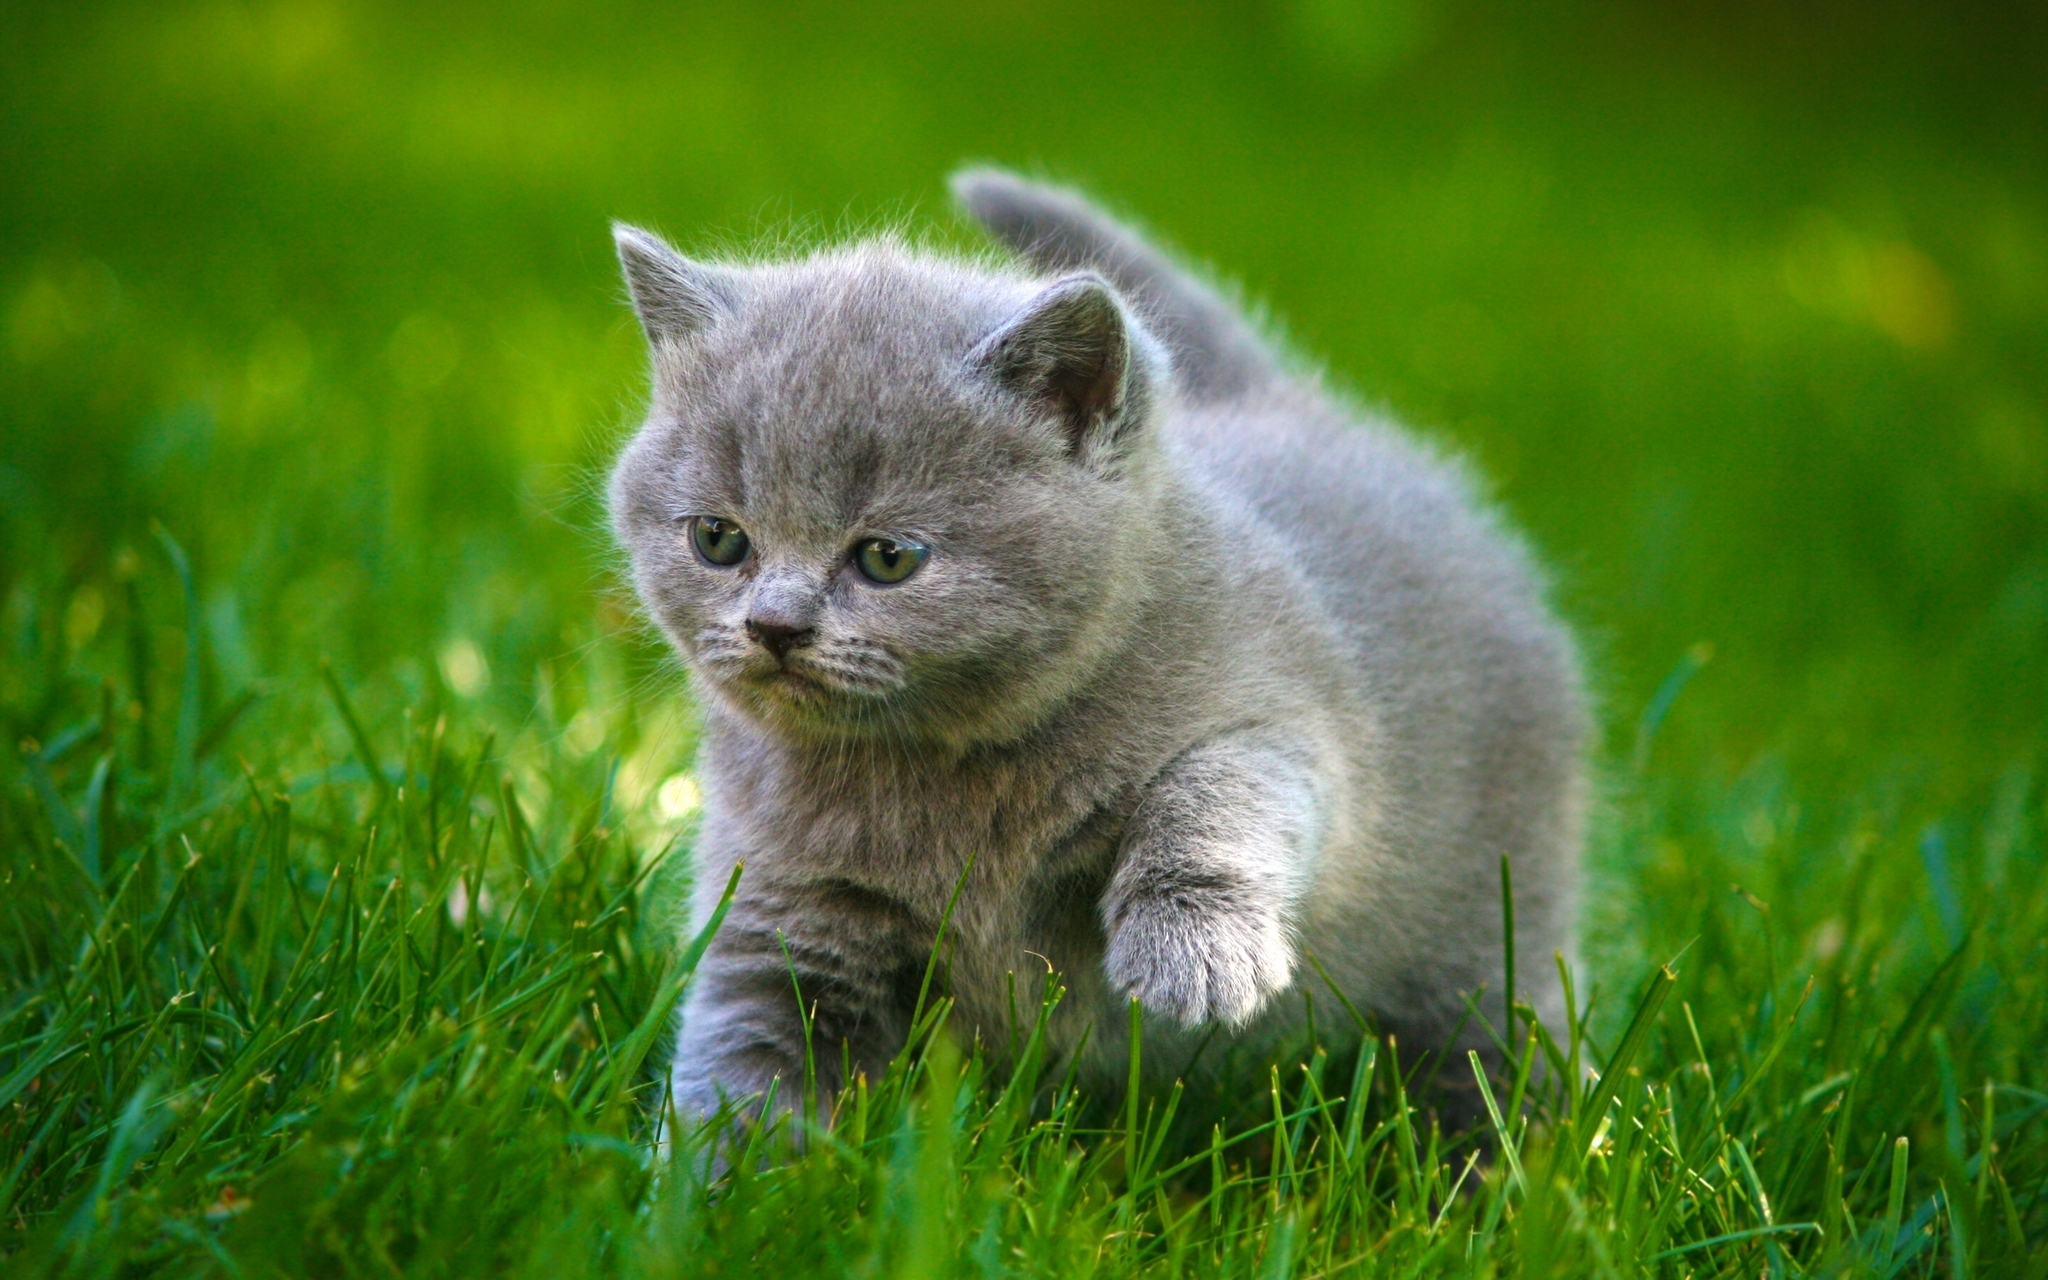 Cats Grey Kittens Fluffy Fat Grass Animals Cat Kitten Baby